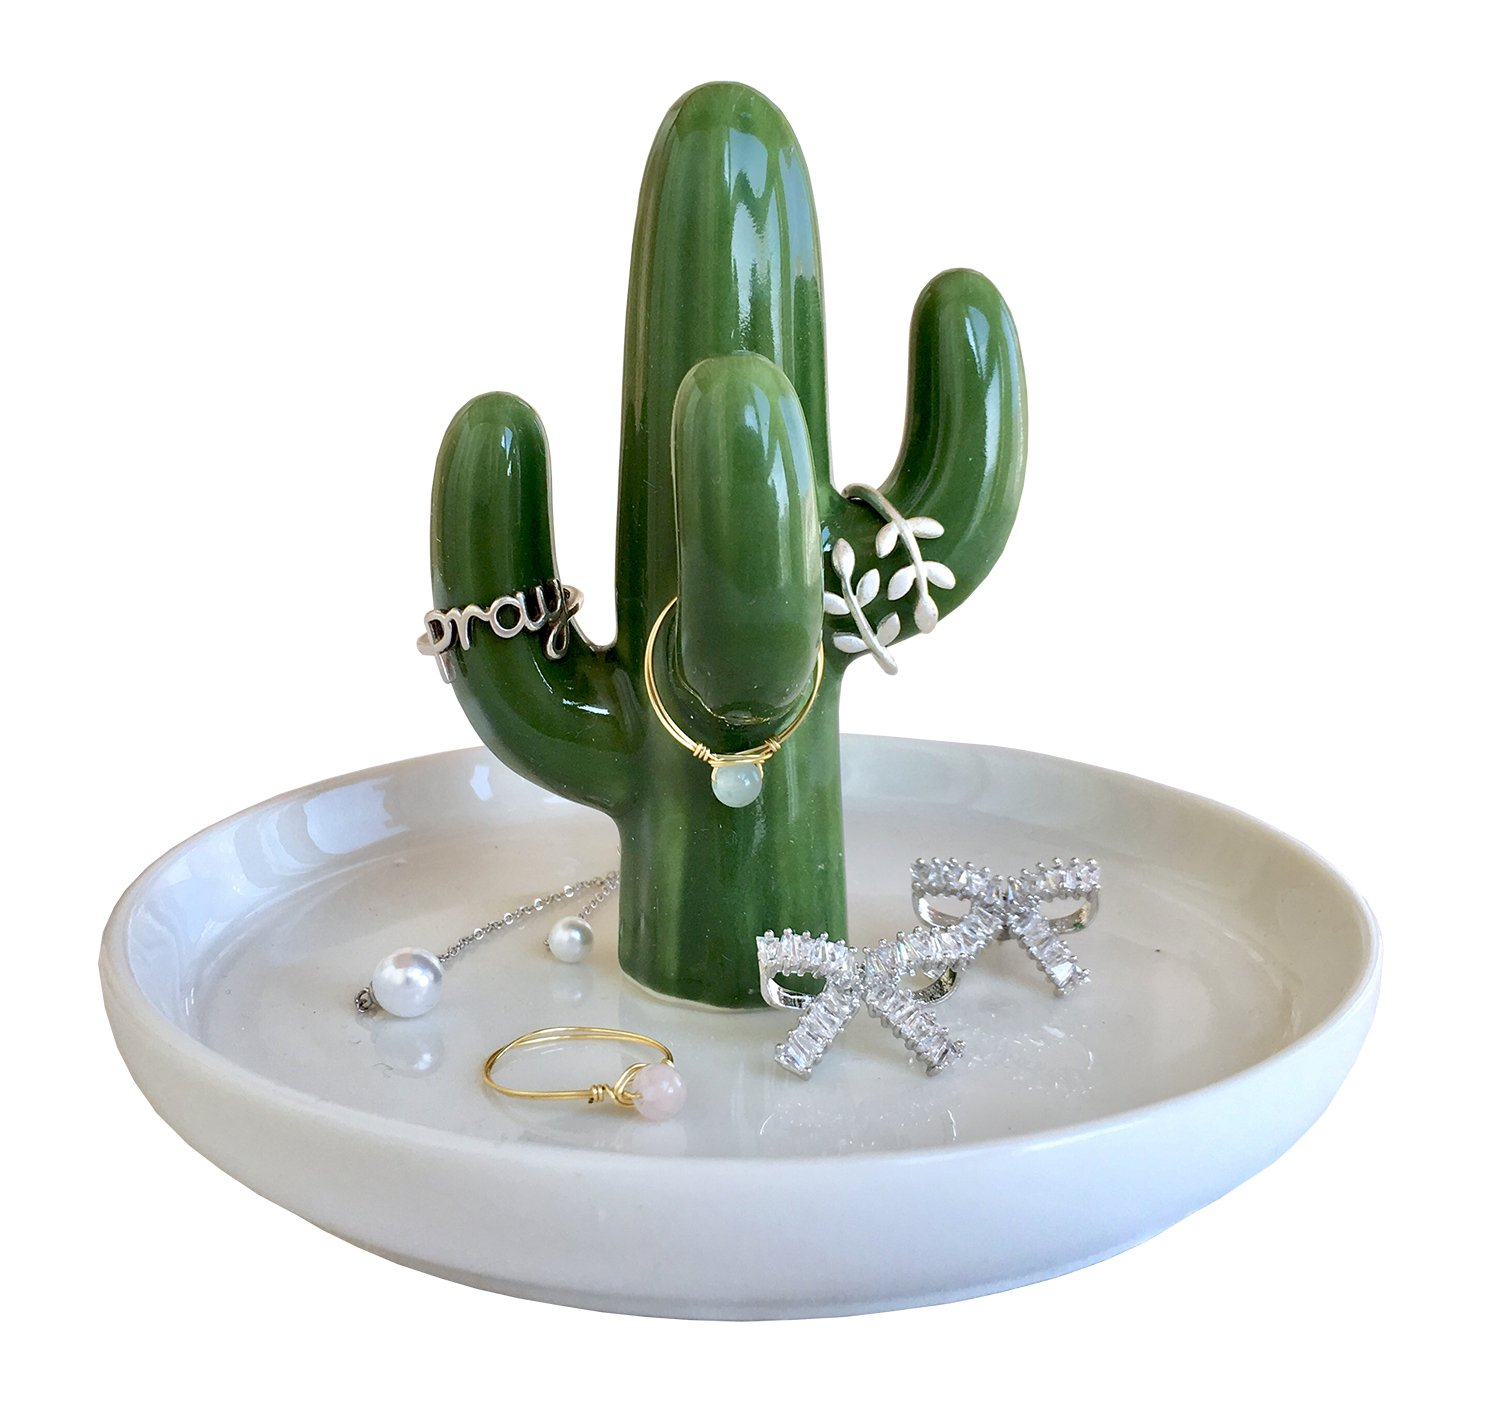 RaseHouse Cactus Ring Holder Dish for Jewelry Necklace Bracelet Holders Organizer Display Home Decor Birthday Wedding Christmas Gift for Mom, Friend, Girlfriend (Green)